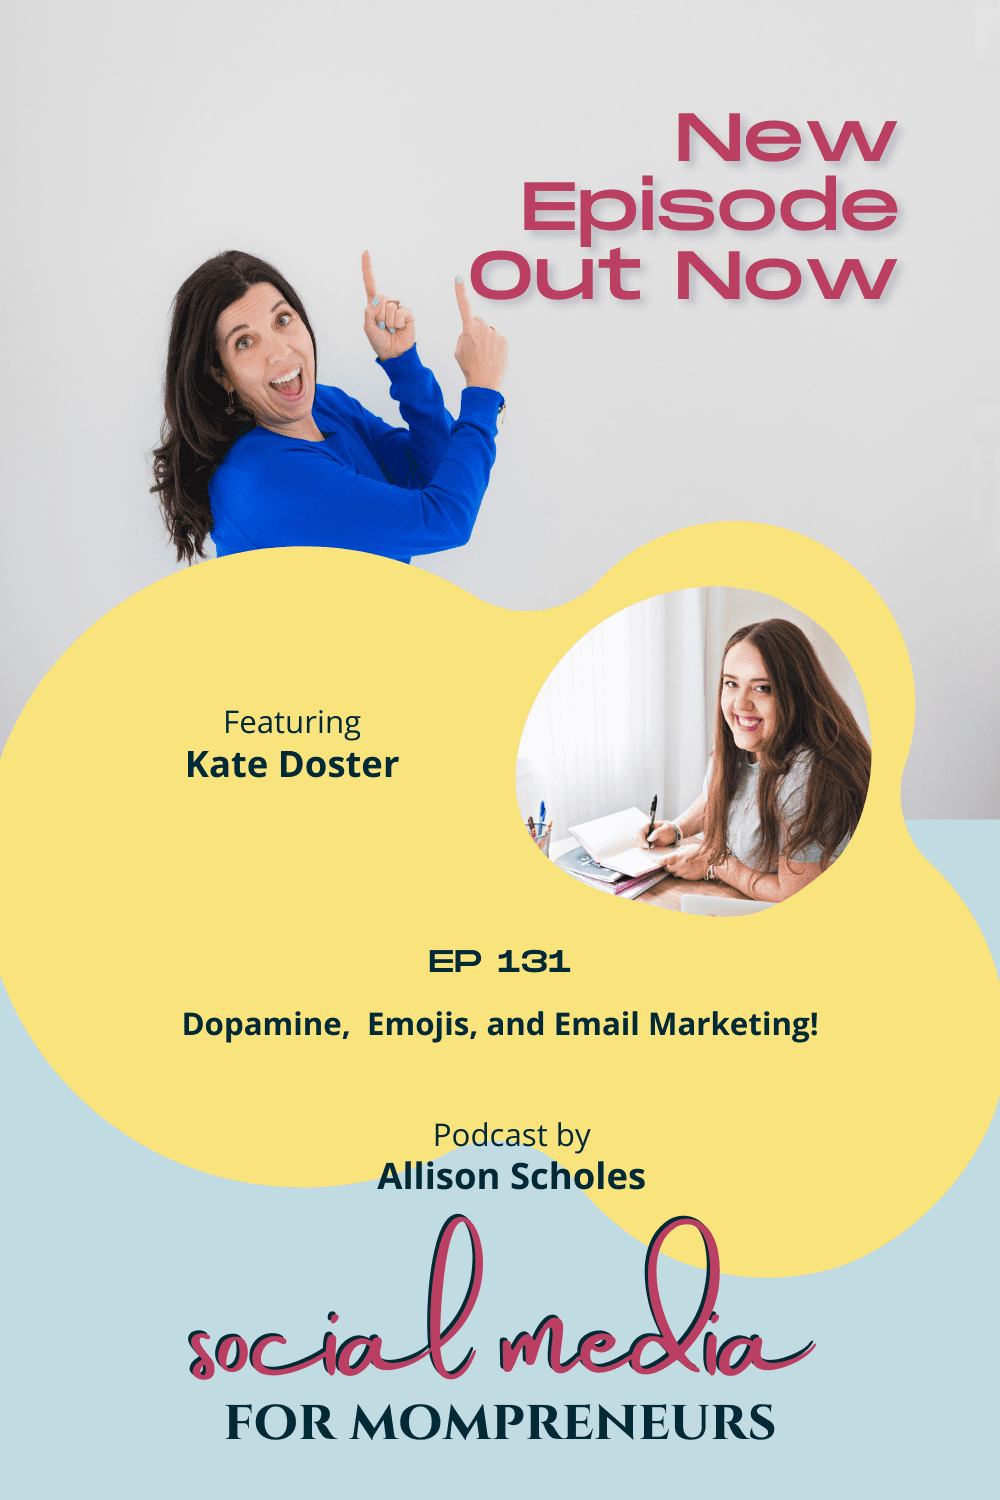 """Top portion contains a photo of Allison Scholes, a white femaile with long dark brown hair that is down. She is wearing a dark blue long sleeve shirt and pointing up with both hands. near her hands are the words """"New Episode Out Now"""" Center of the image is the words """"Featuring Kate Doster"""" on the right and a rounded image of Kate Doster, a white female with long brown hair that is down and a grey short-sleeve tee-shirt, is sitting at a desk holding a pen in her right hand and a notebook in her left that rests on the desk. Under these are the words """" EP 131 Dopamine, Emojis, and Email Marketing. Podcast by Allison Scholes"""". The logo for the podcast Social Media for Mompreneurs is under this. This image is found in the blog post for the episode listed on it, with the blog titled """"Easily Write Effective Emails That Delight Your People Every Week"""""""